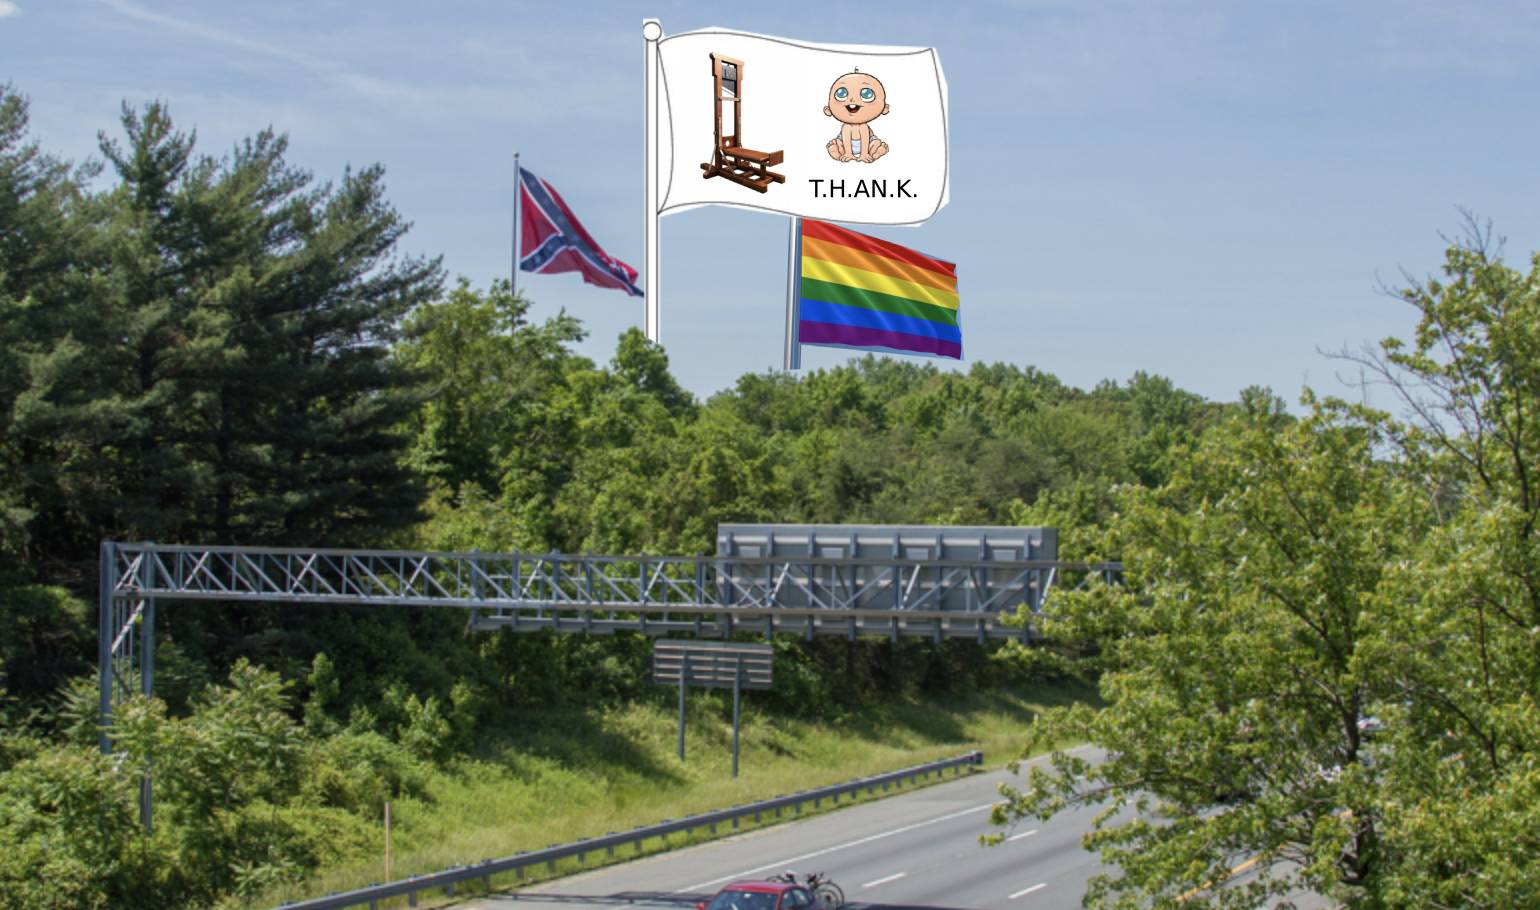 Giant hate group flags on highway